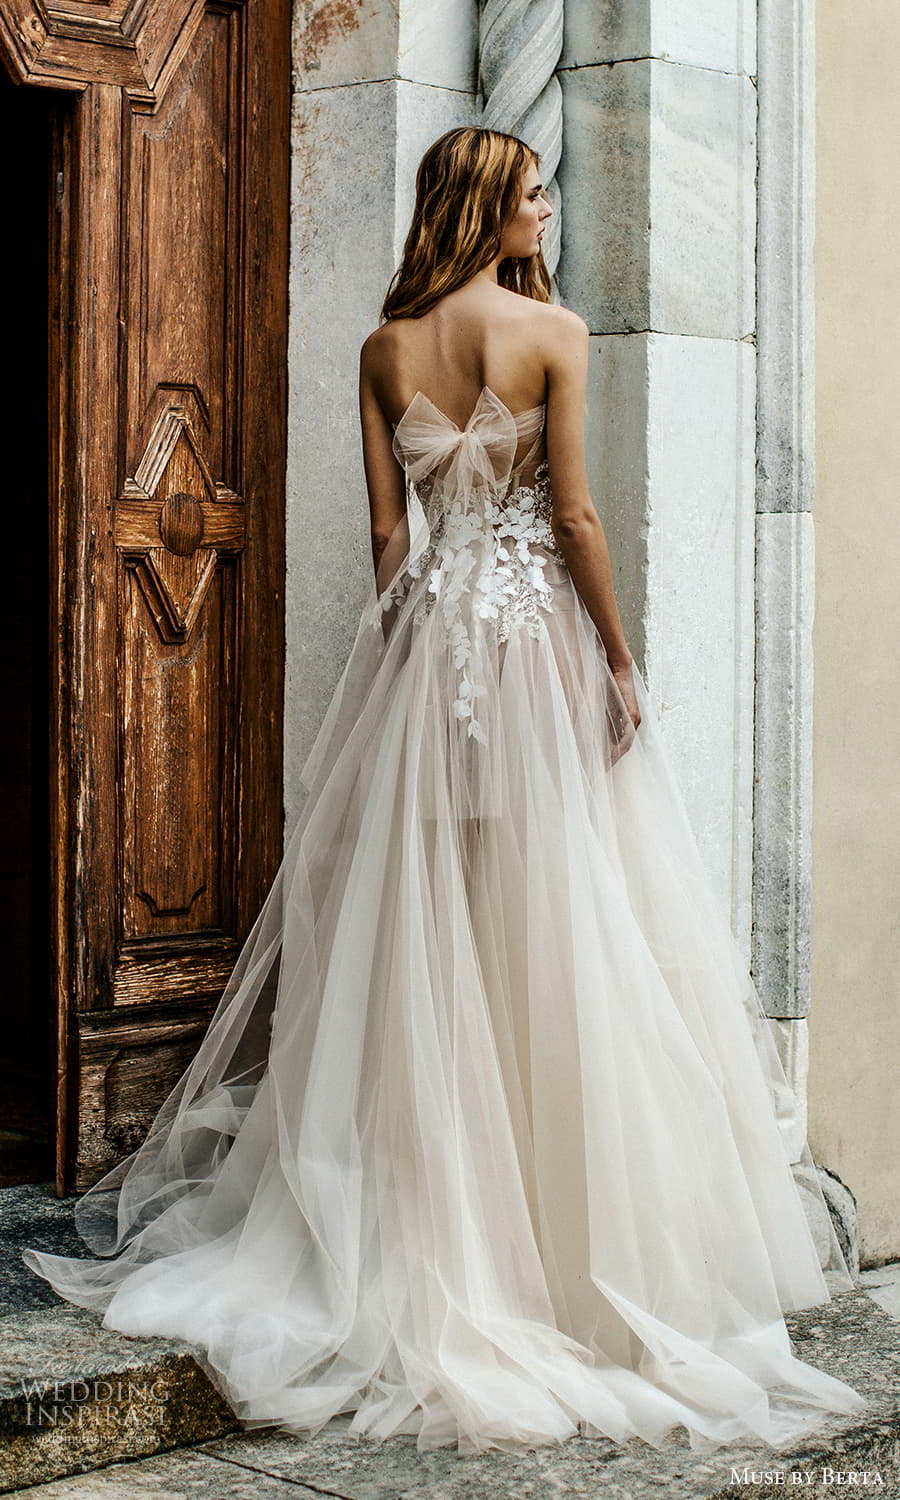 muse by berta spring 2022 bridal strapless sweetheart neckline embellished bodice a line ball gown wedding dress chapel train (13) bv